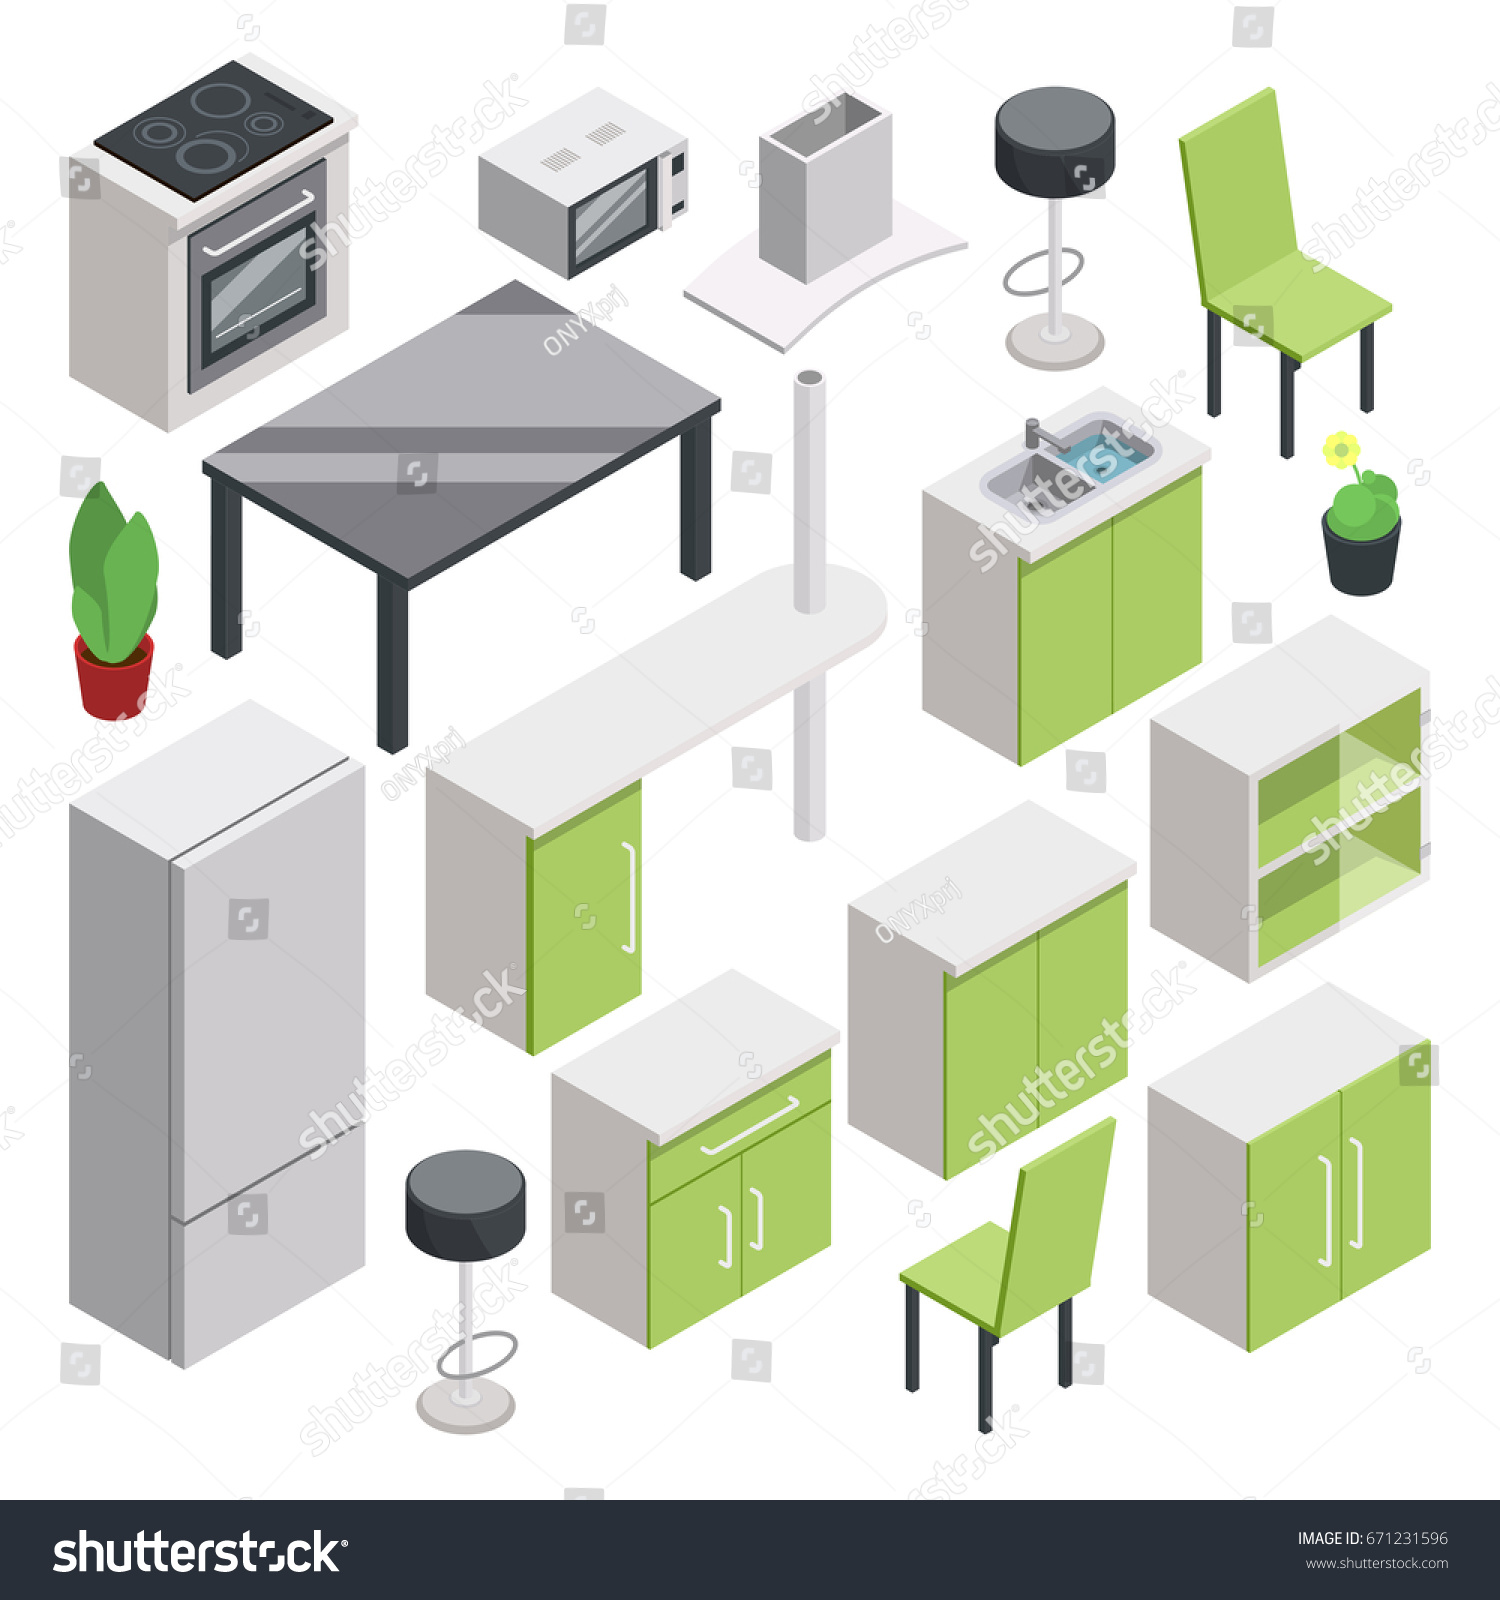 3d room design vector isometric furniture stock vector for Room design vector